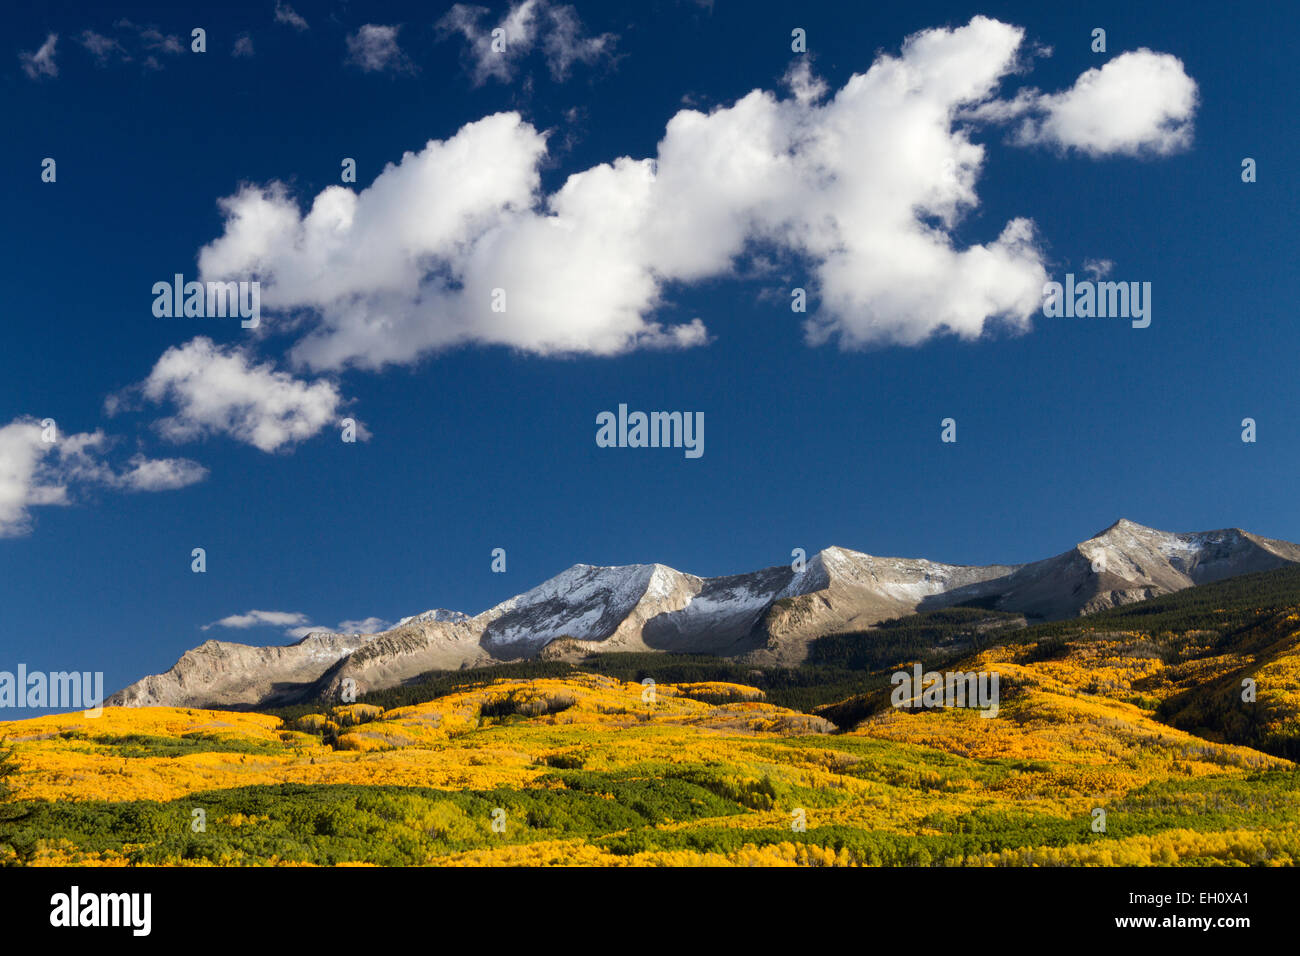 Autumn scenery in Gunnison National Forest, Colorado - Stock Image